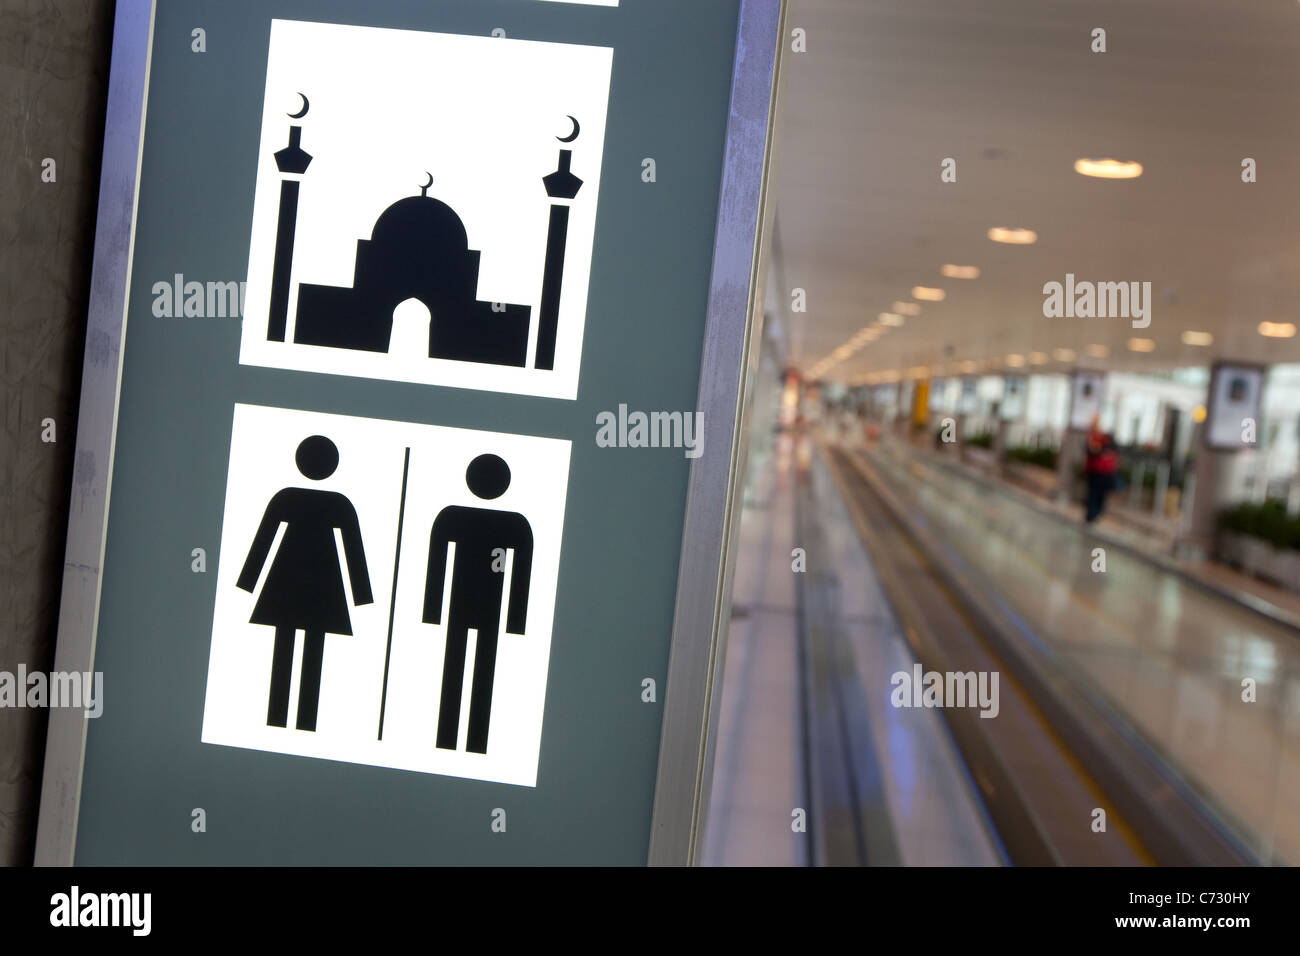 Amazing Muslim Prayer Room Signage Photos Muslim Prayer Room Download Free Architecture Designs Crovemadebymaigaardcom